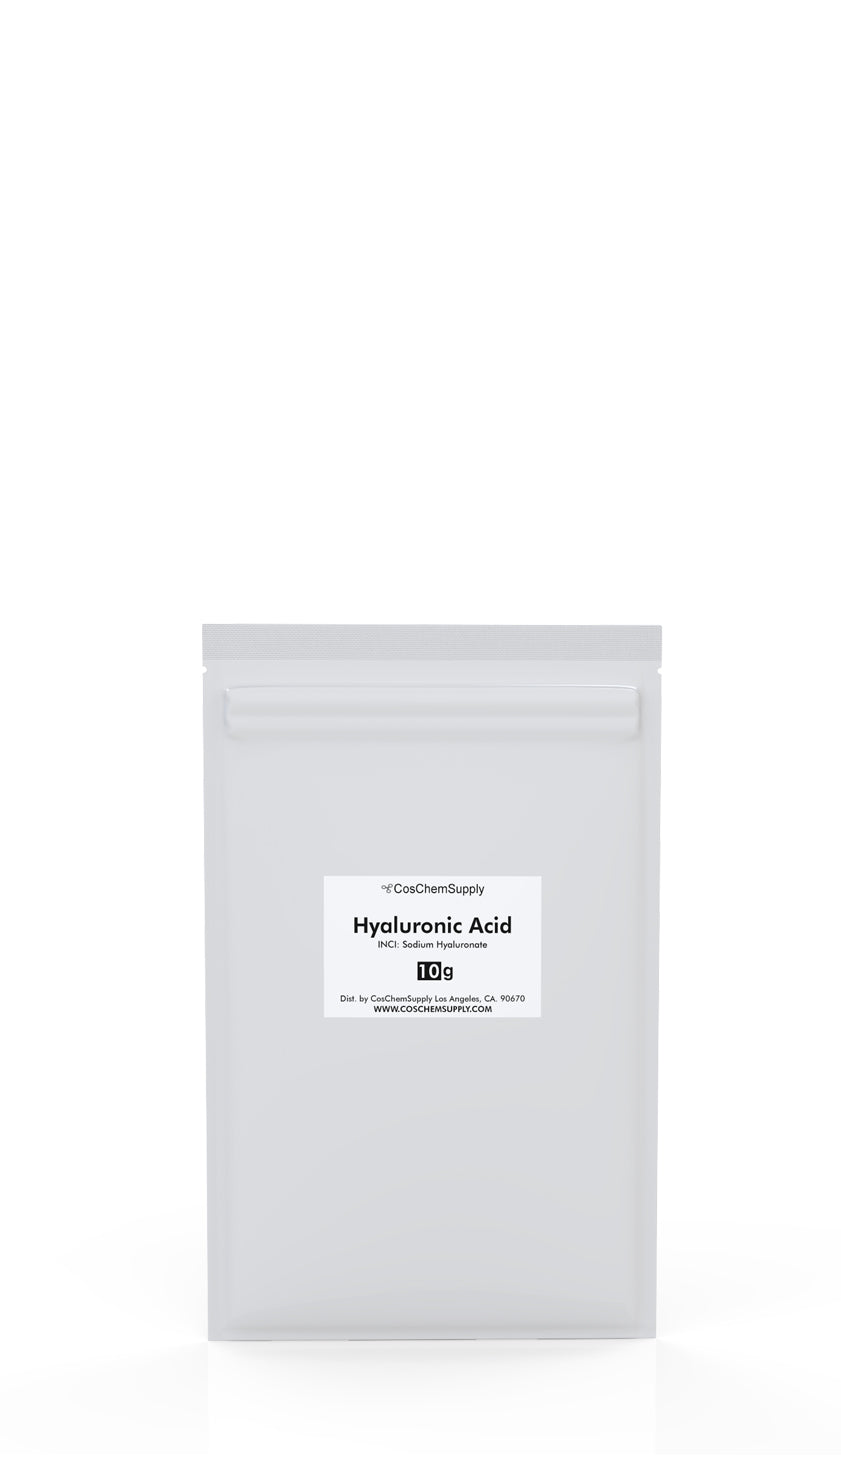 Hyaluronic Acid Powder